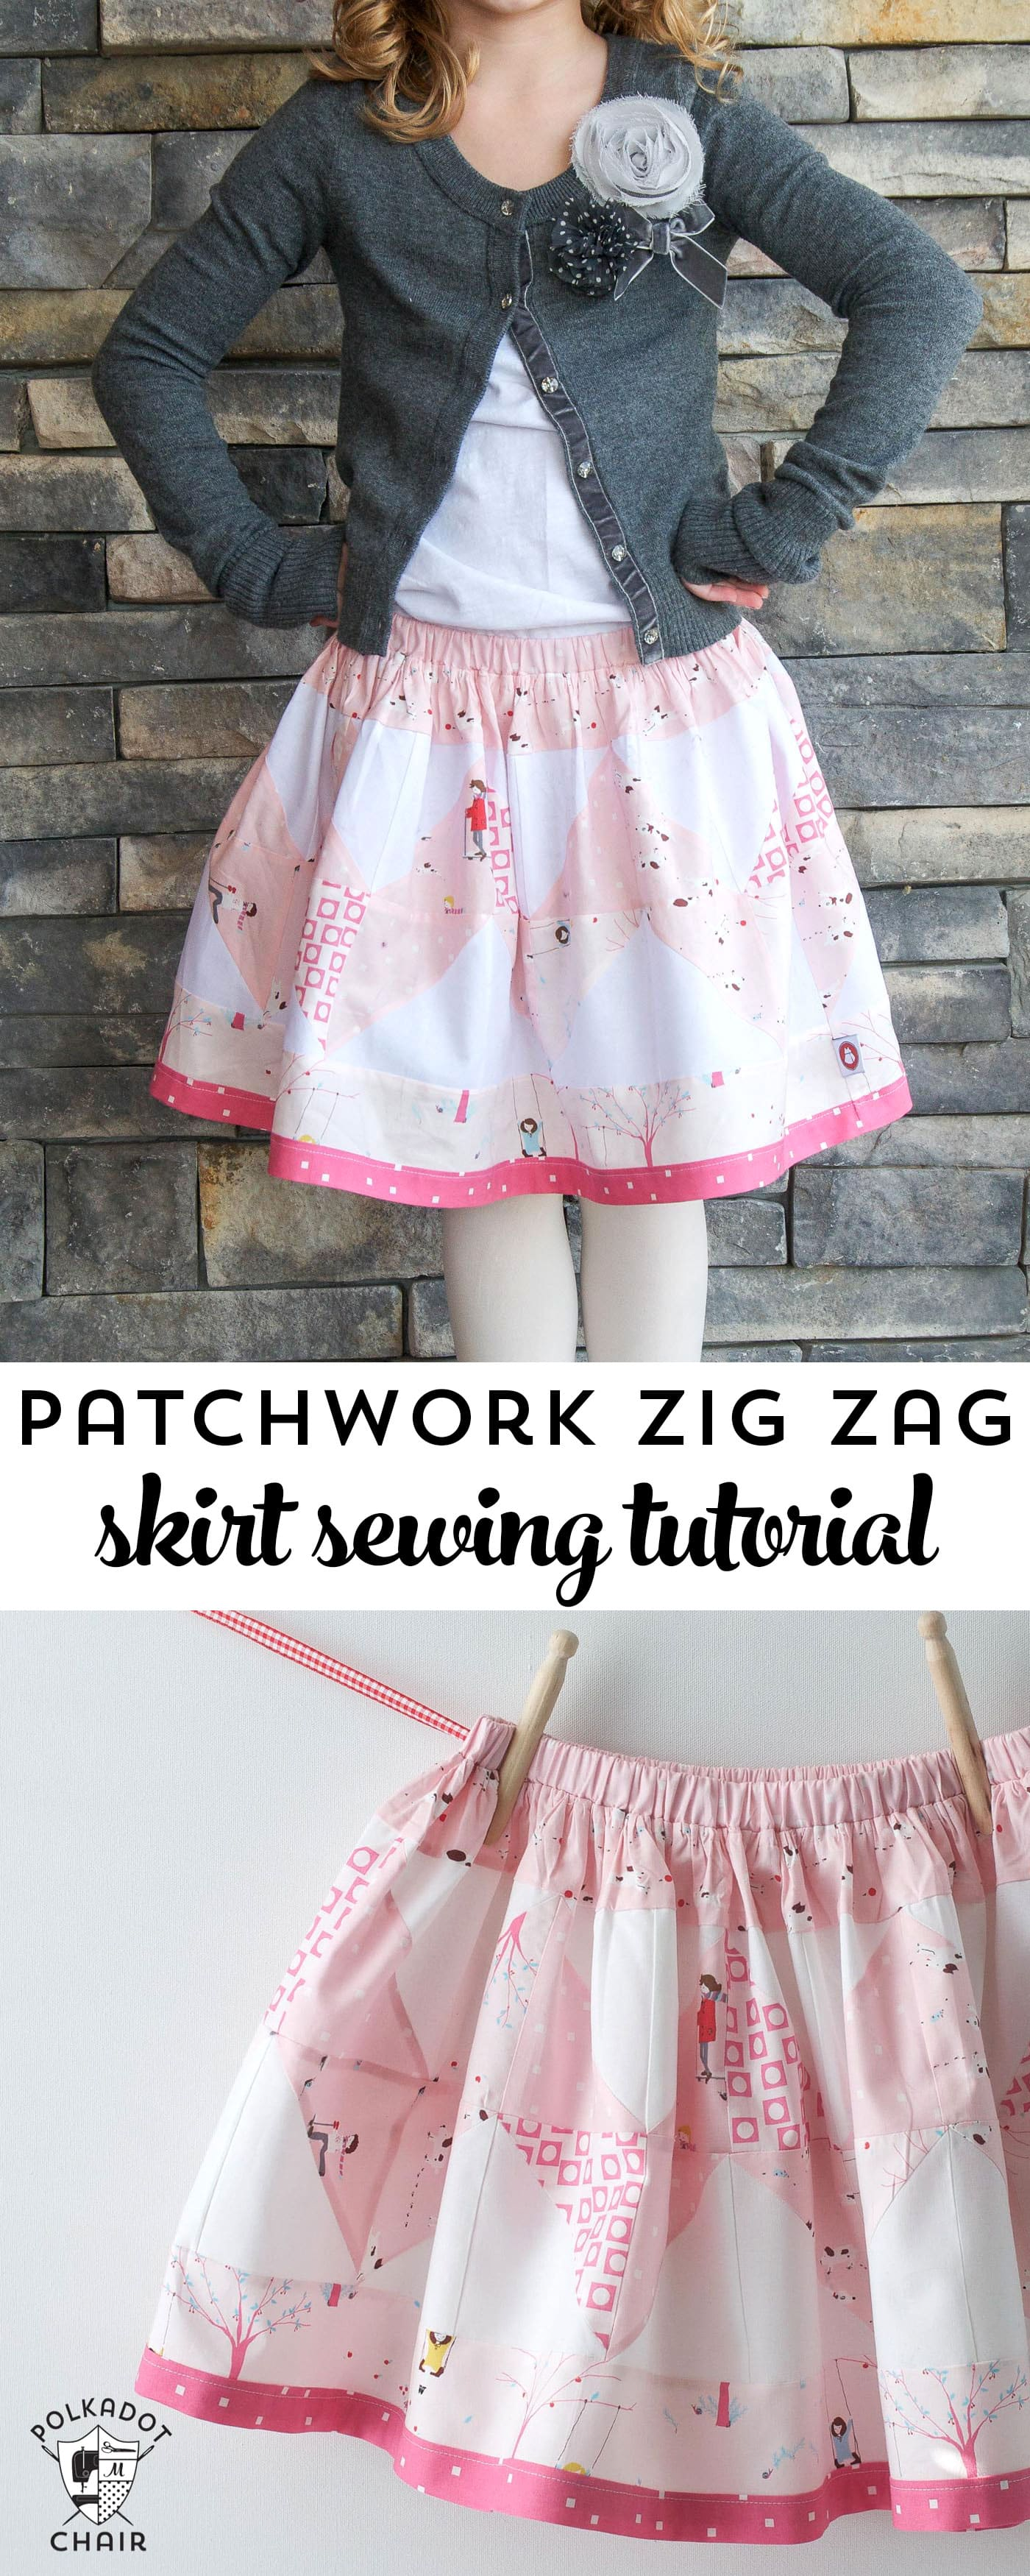 Free Sewing Tutorial to make a little girls patchwork zig zag skirt- uses charm packs- super quick and cute!